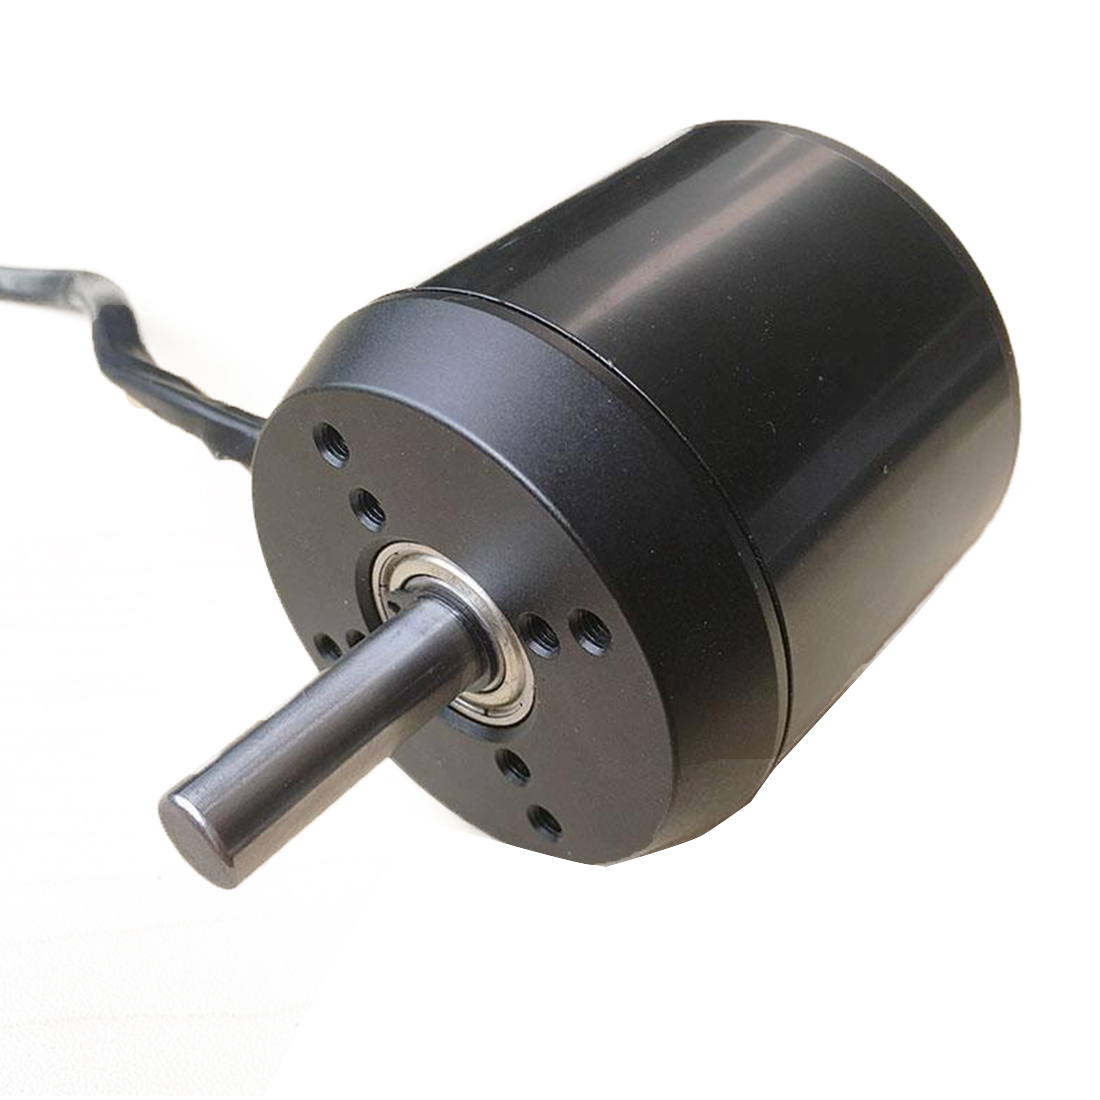 High Efficiency 6374 <font><b>170KV</b></font> Brushless <font><b>Motor</b></font> 2800W 24V/36V for Four-Wheel Balancing Scooters Electric Skateboards With <font><b>Motor</b></font> Hall image